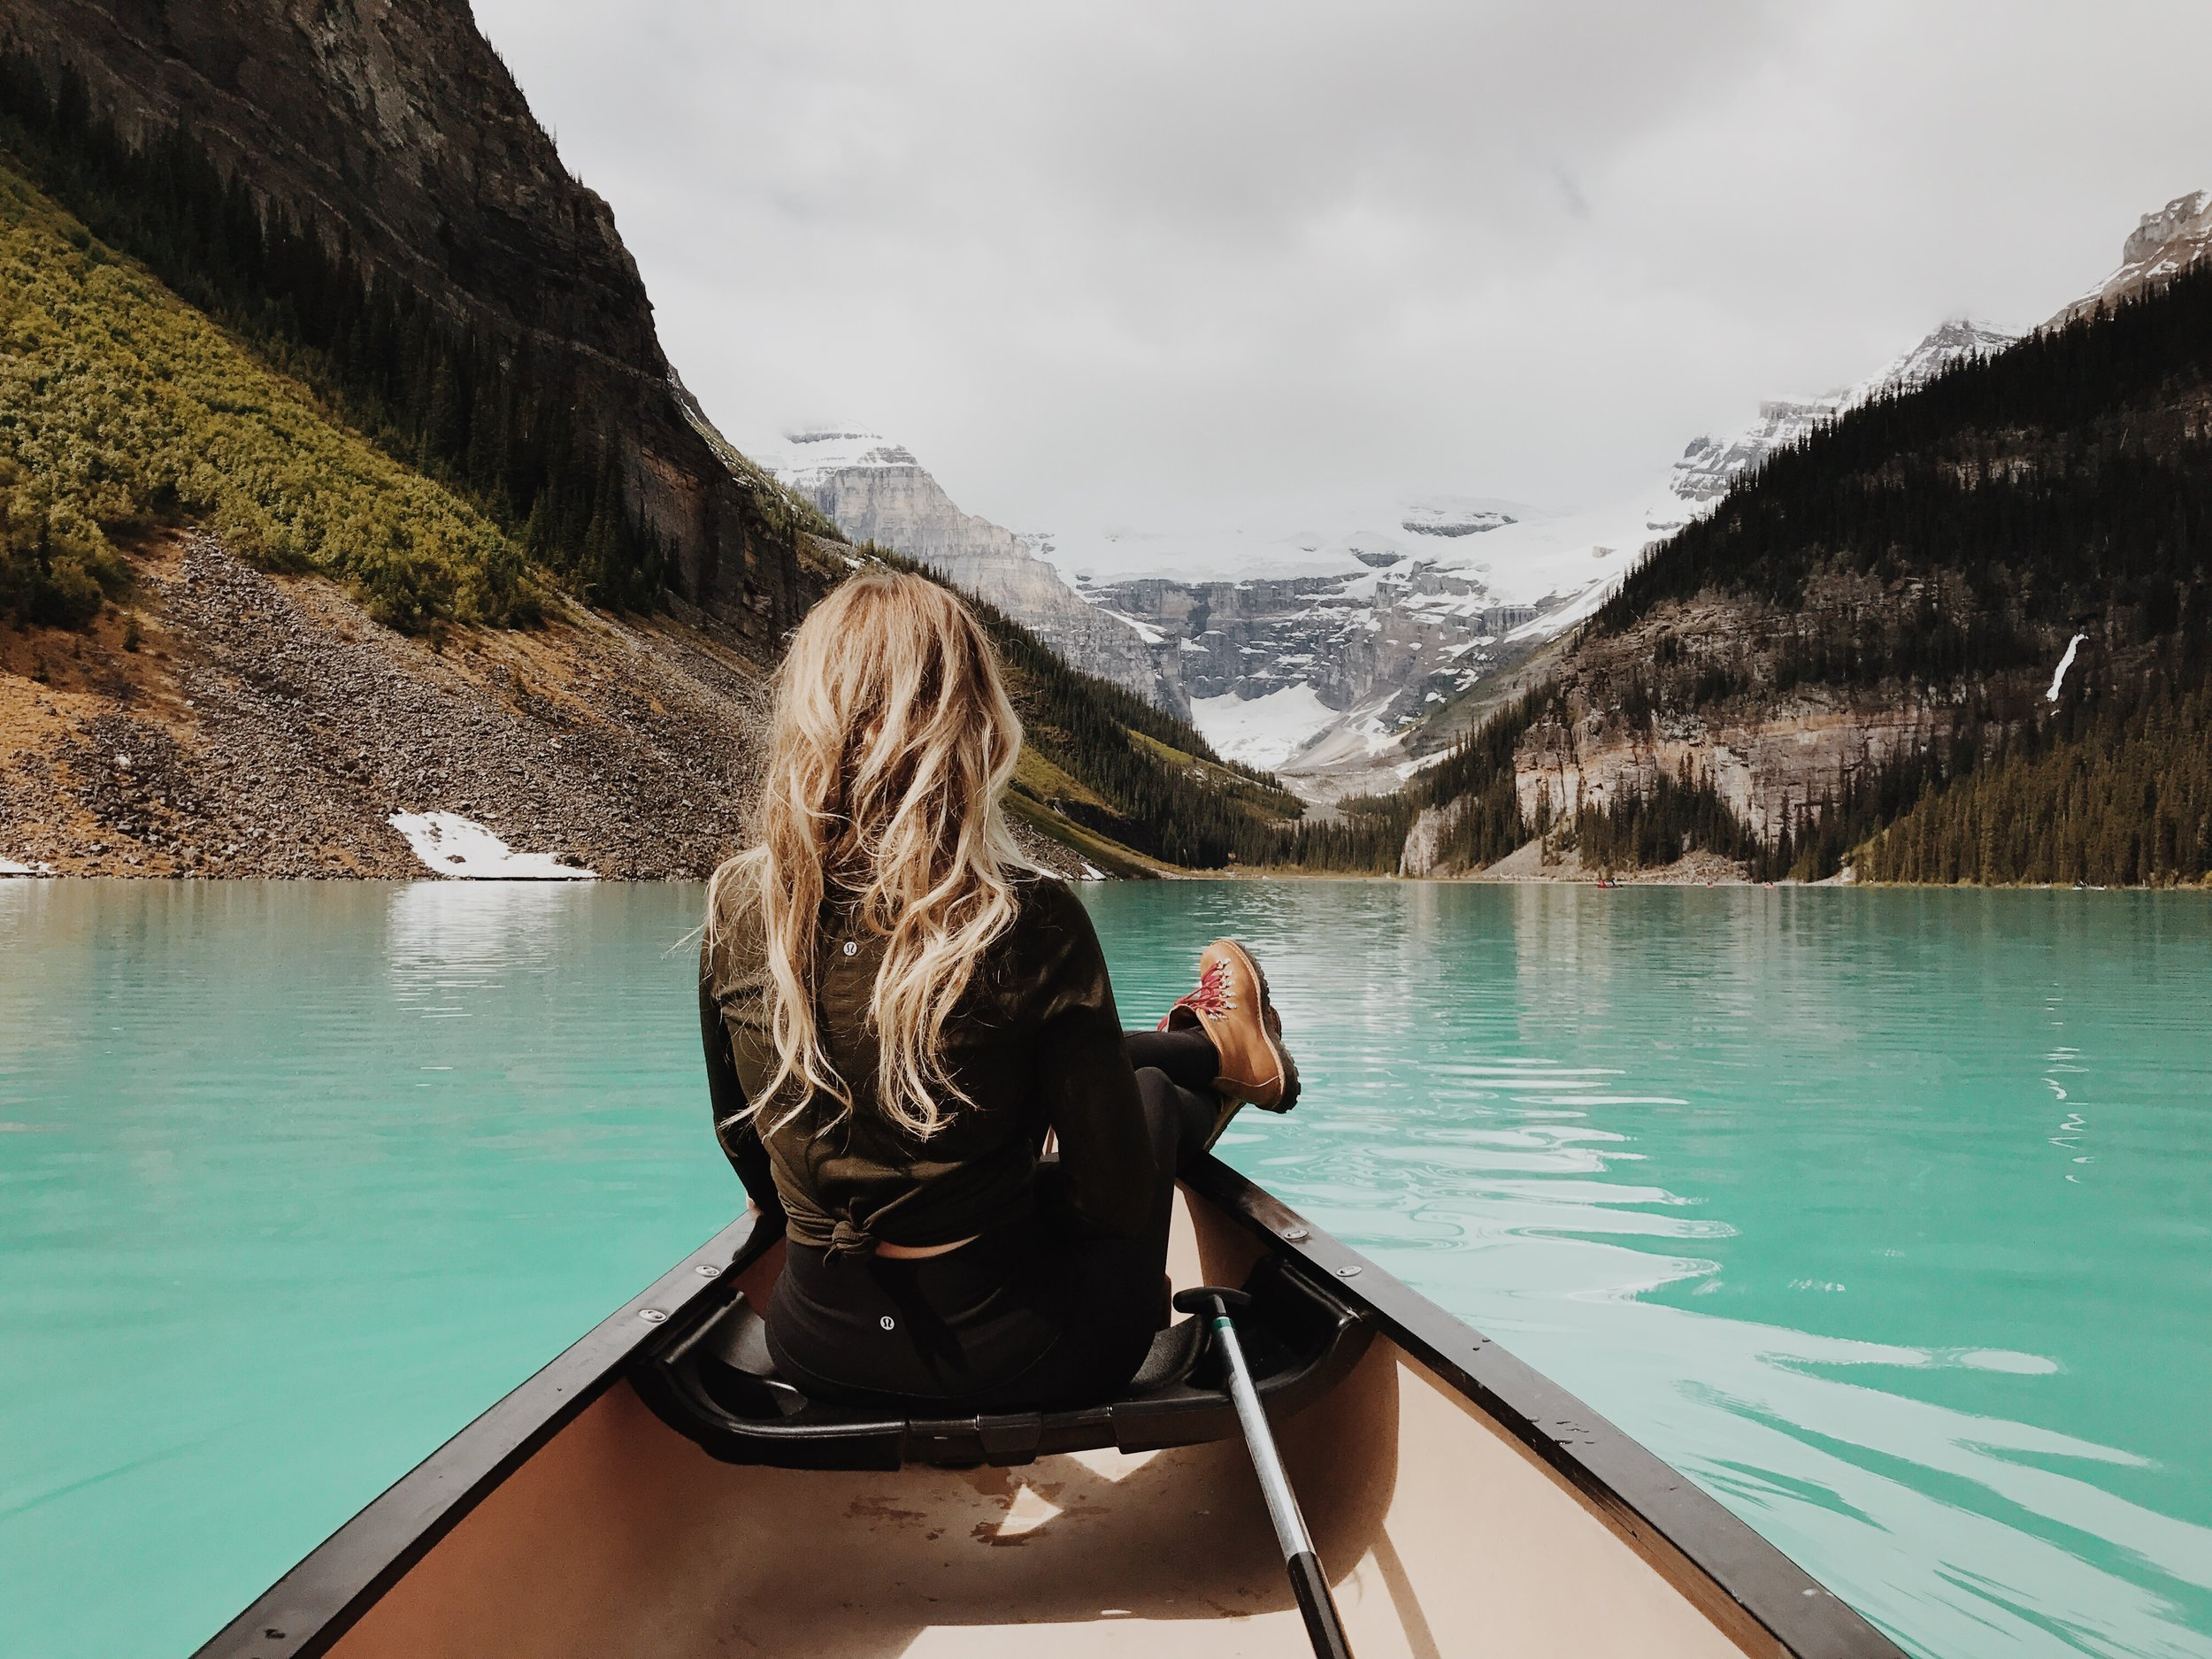 The next day we headed into Banff which turned out to be our most favorite place. We started the day on another canoe trip on Lake Louise, this time much better at rowing and steering the boat! This water made me thirsty. I have never seen a lake this color in my life. We were almost silent for most of the time in the boat because of how insanely beautiful it was to be sitting in the middle of this. Photo by   Antrom Kury